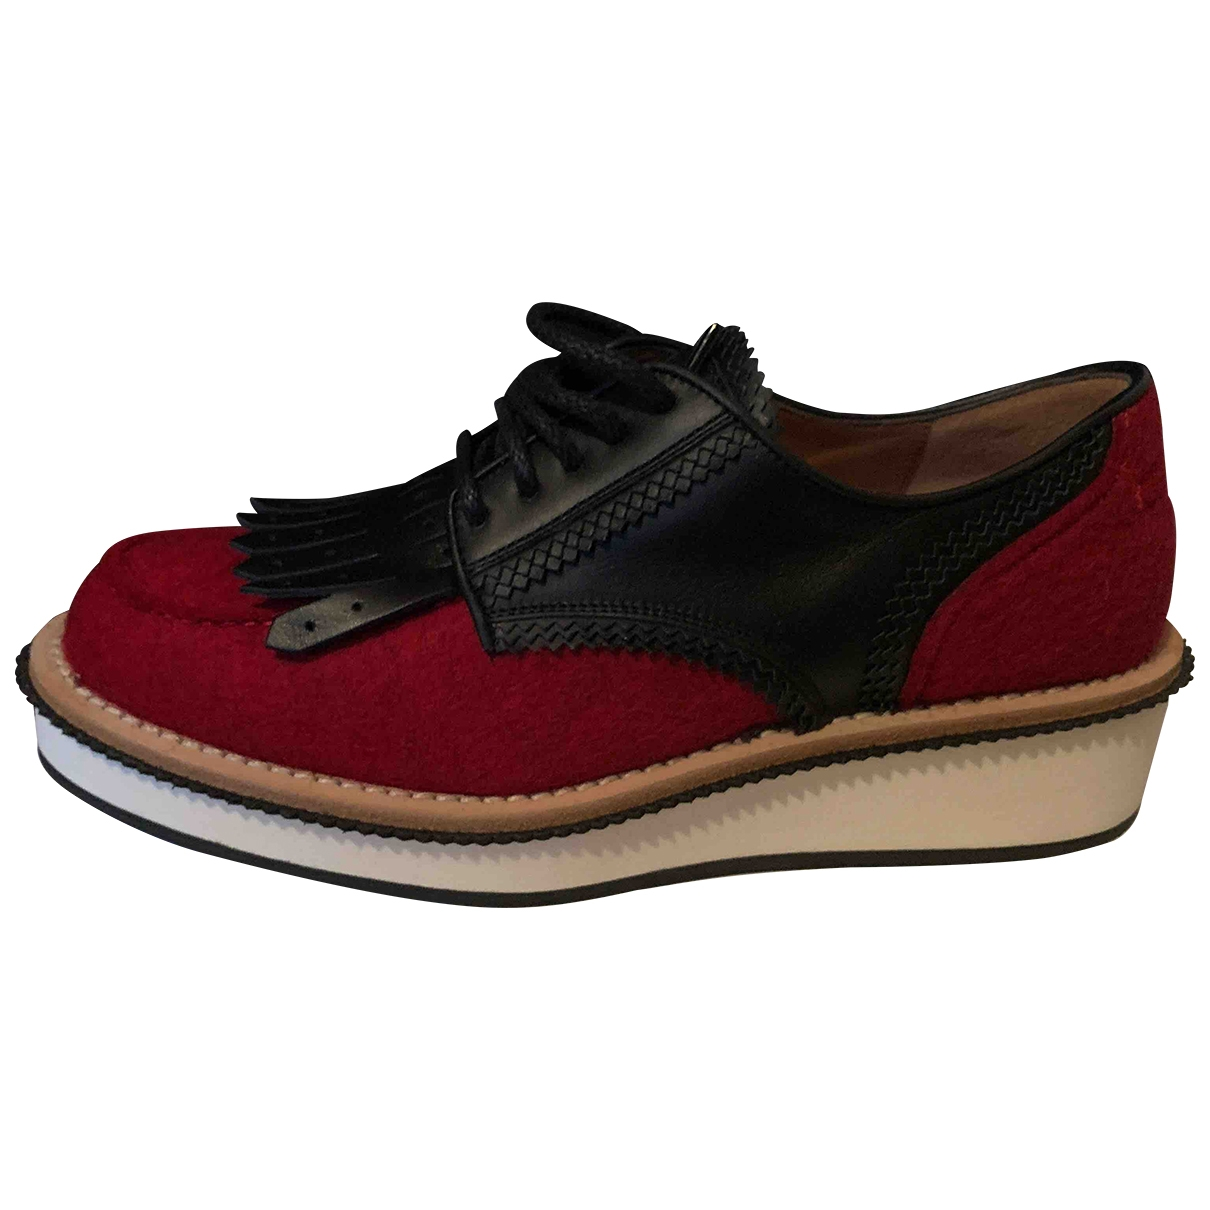 Givenchy \N Red Tweed Lace ups for Women 38 EU